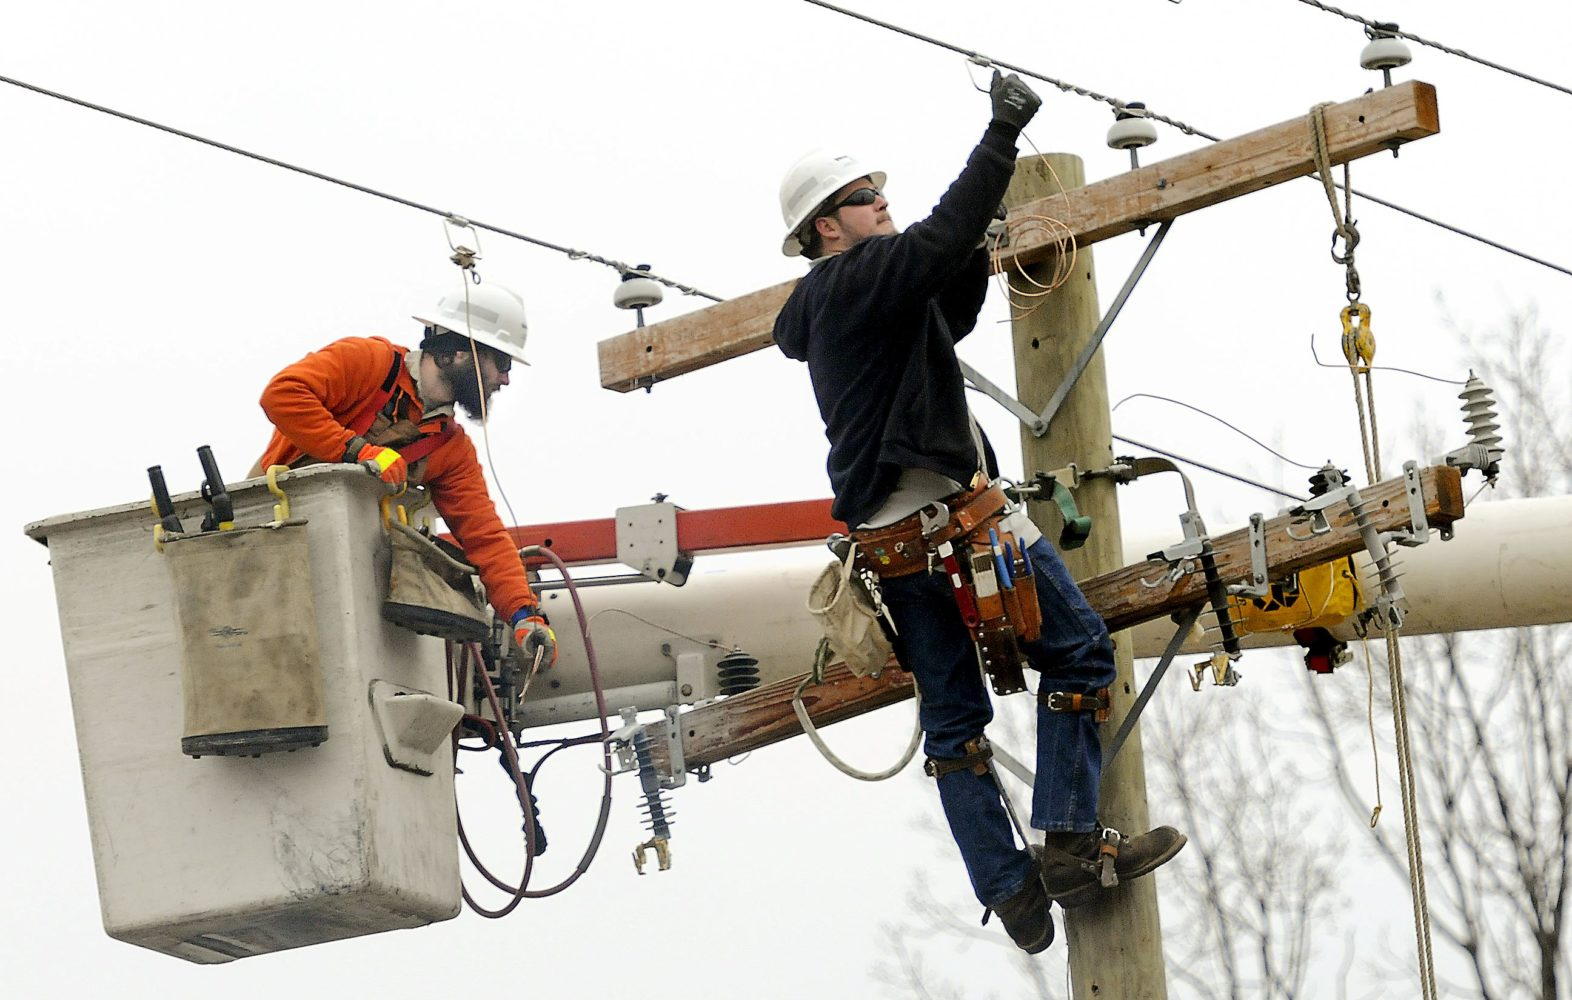 UPDATE: Power outage effects street light operation in Carrollton